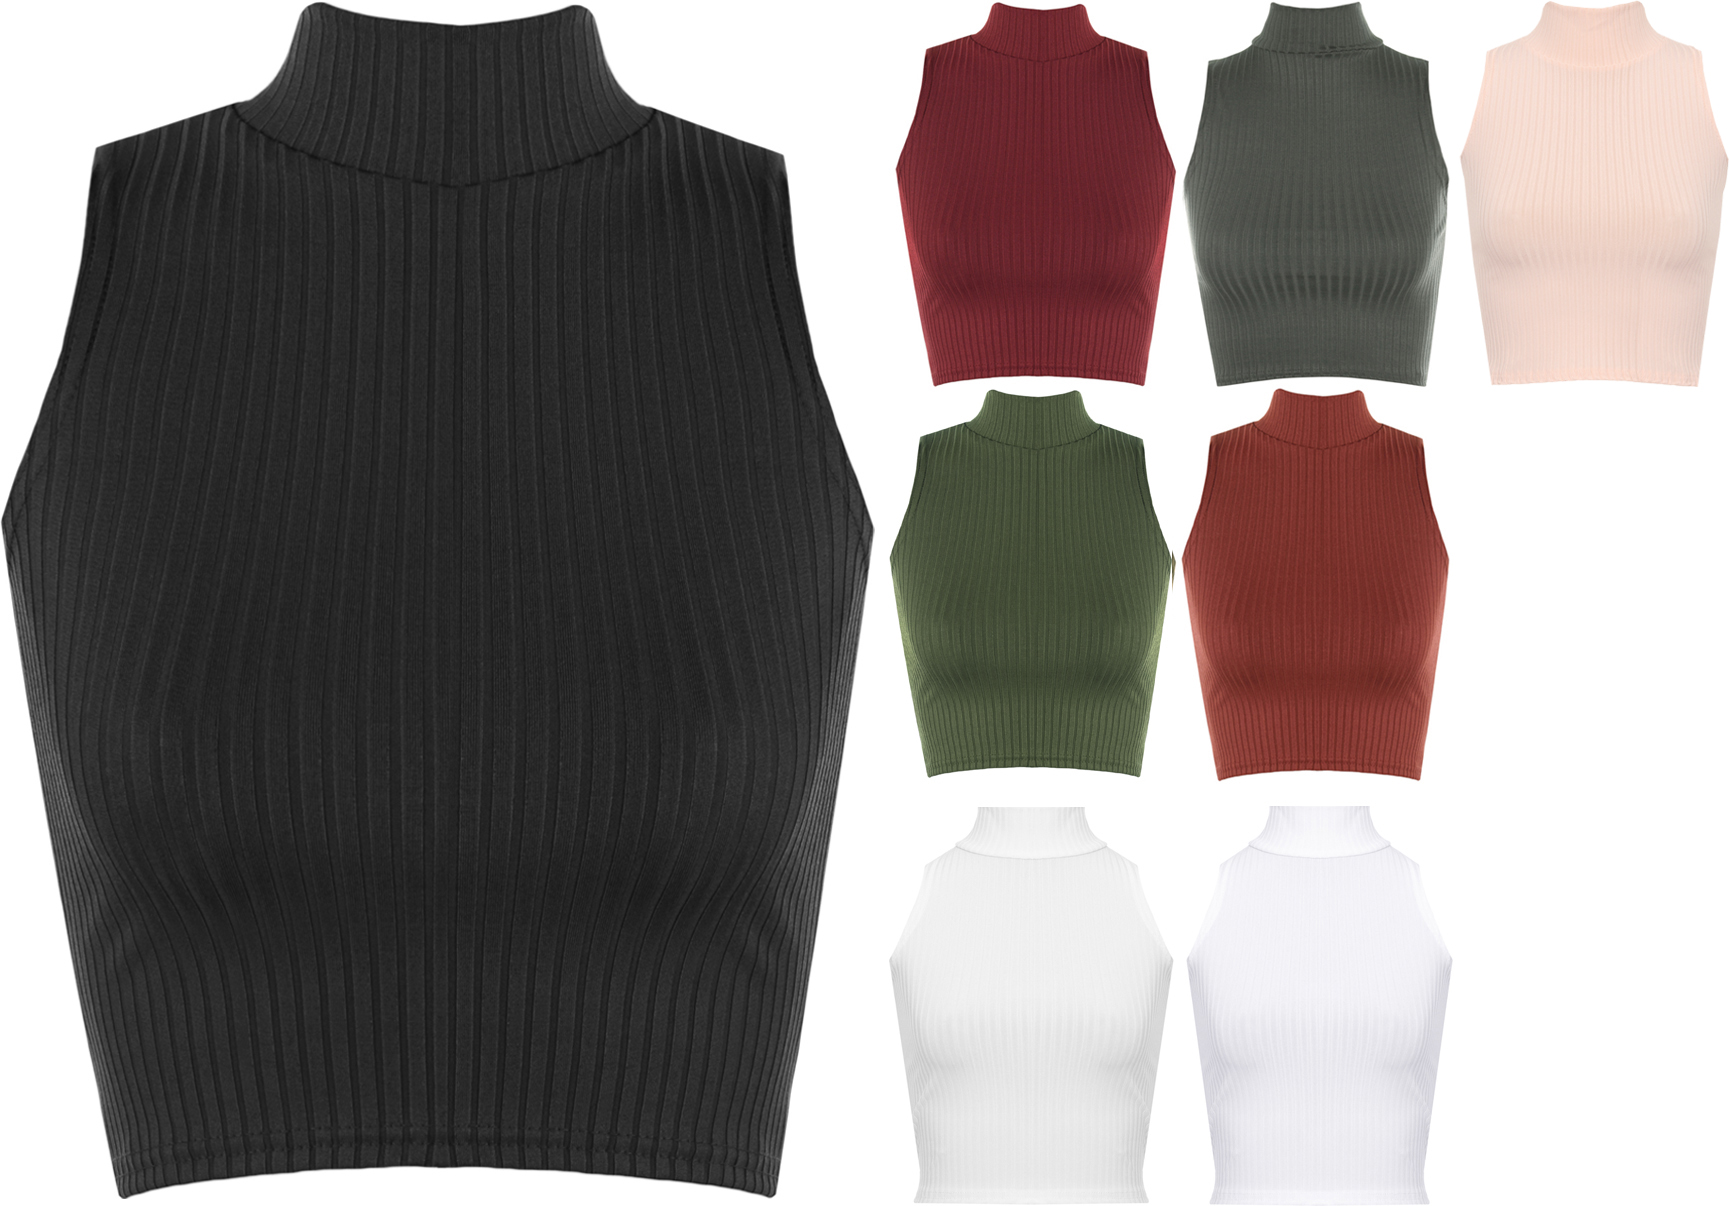 New Womens Ribbed Knitted Sleeveless Short Turtle Neck ...